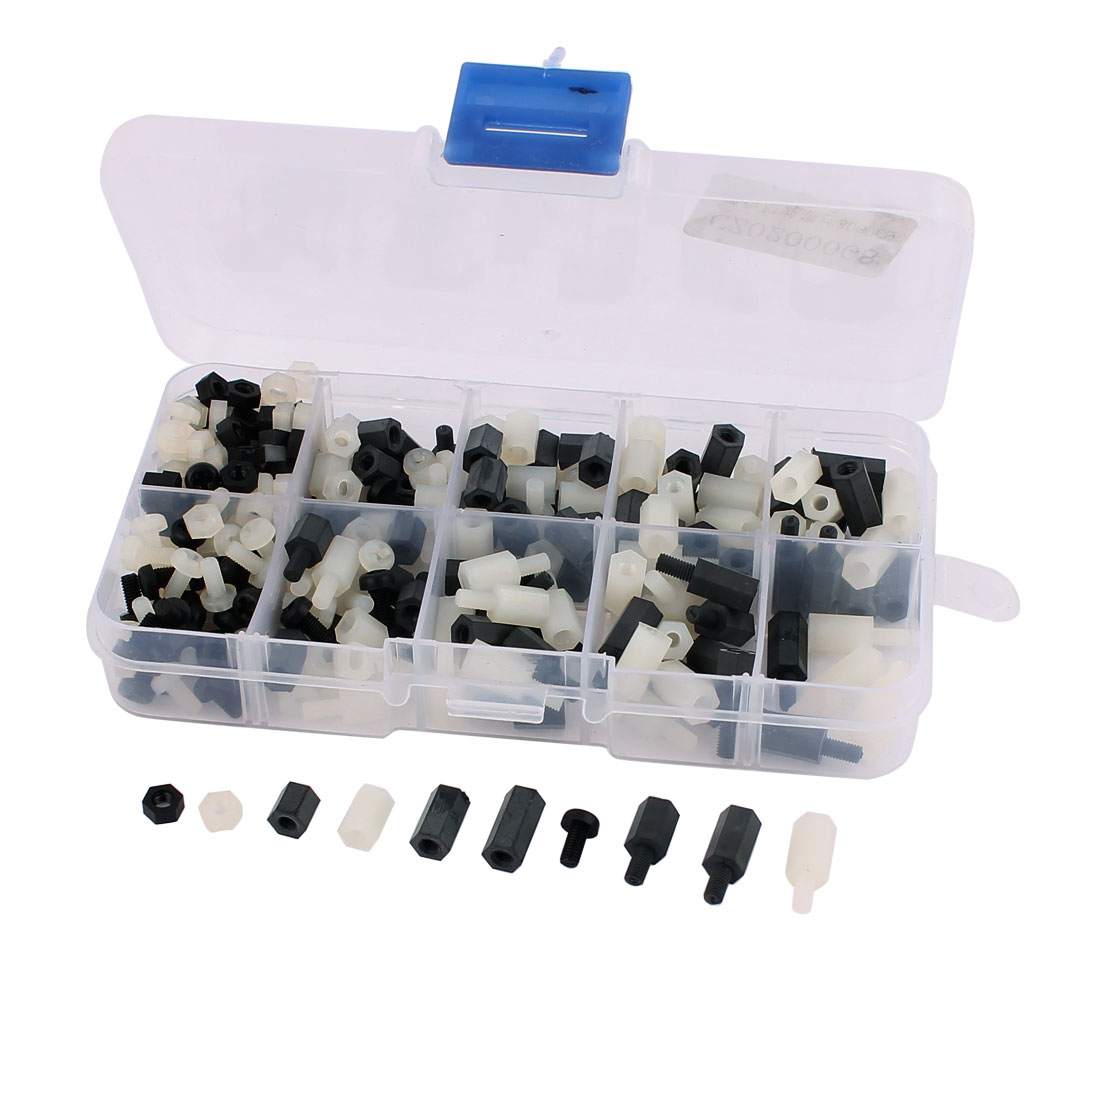 300pcs M3 Nylon Hex Spacer Screw Nut Stand-off Assortment Kit Black+White